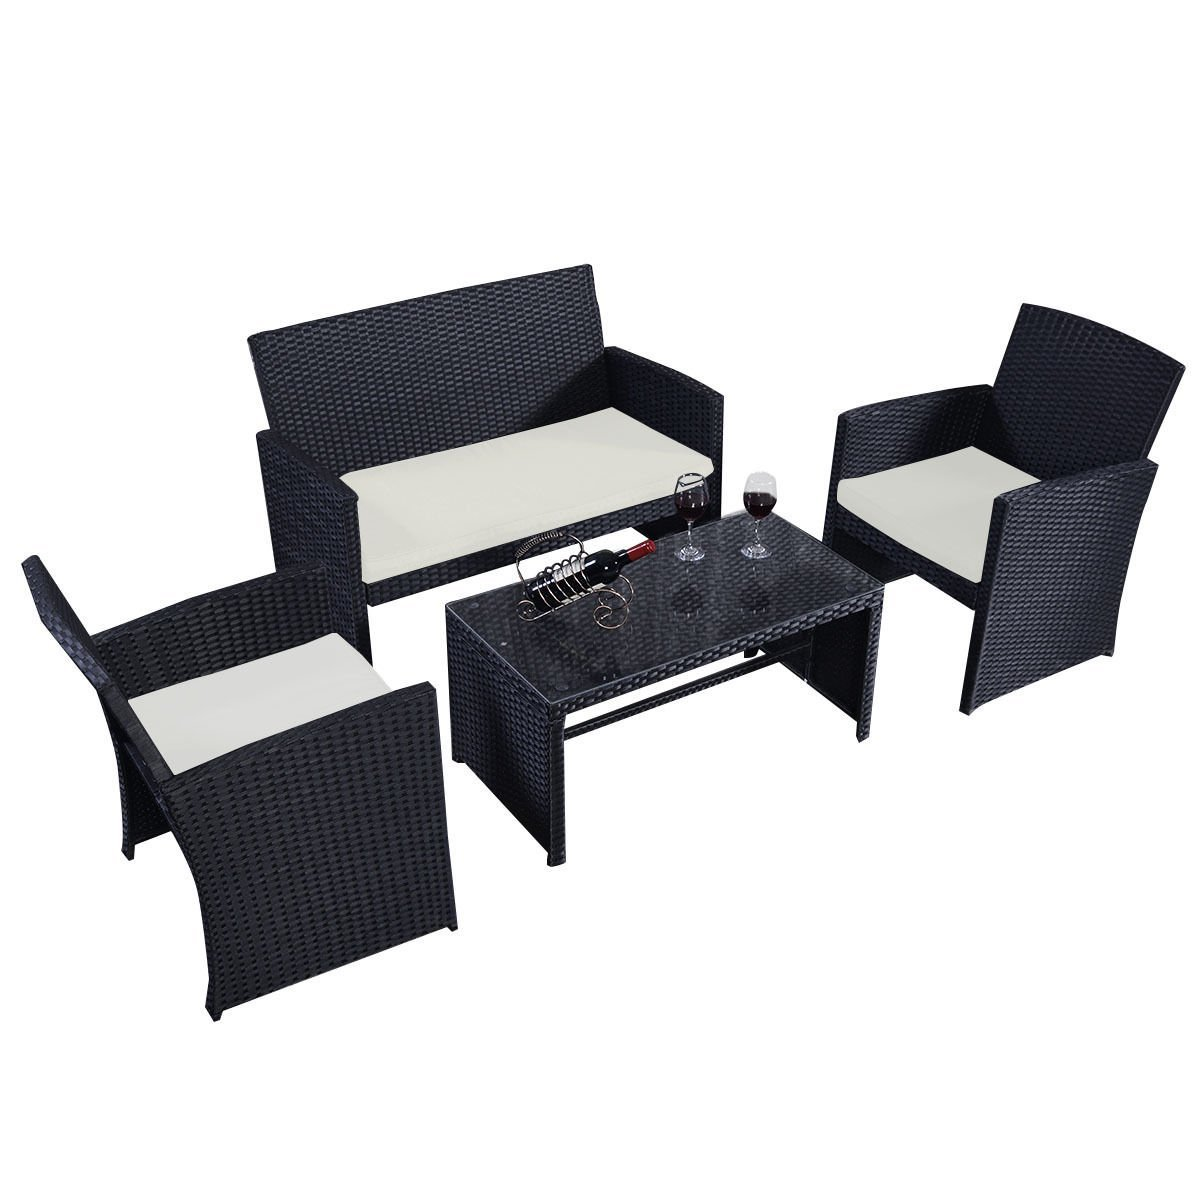 GHP GHP 4 Pcs Black Wicker Rattan Sofa Furniture Set Patio/Garden w Cushioned Seat